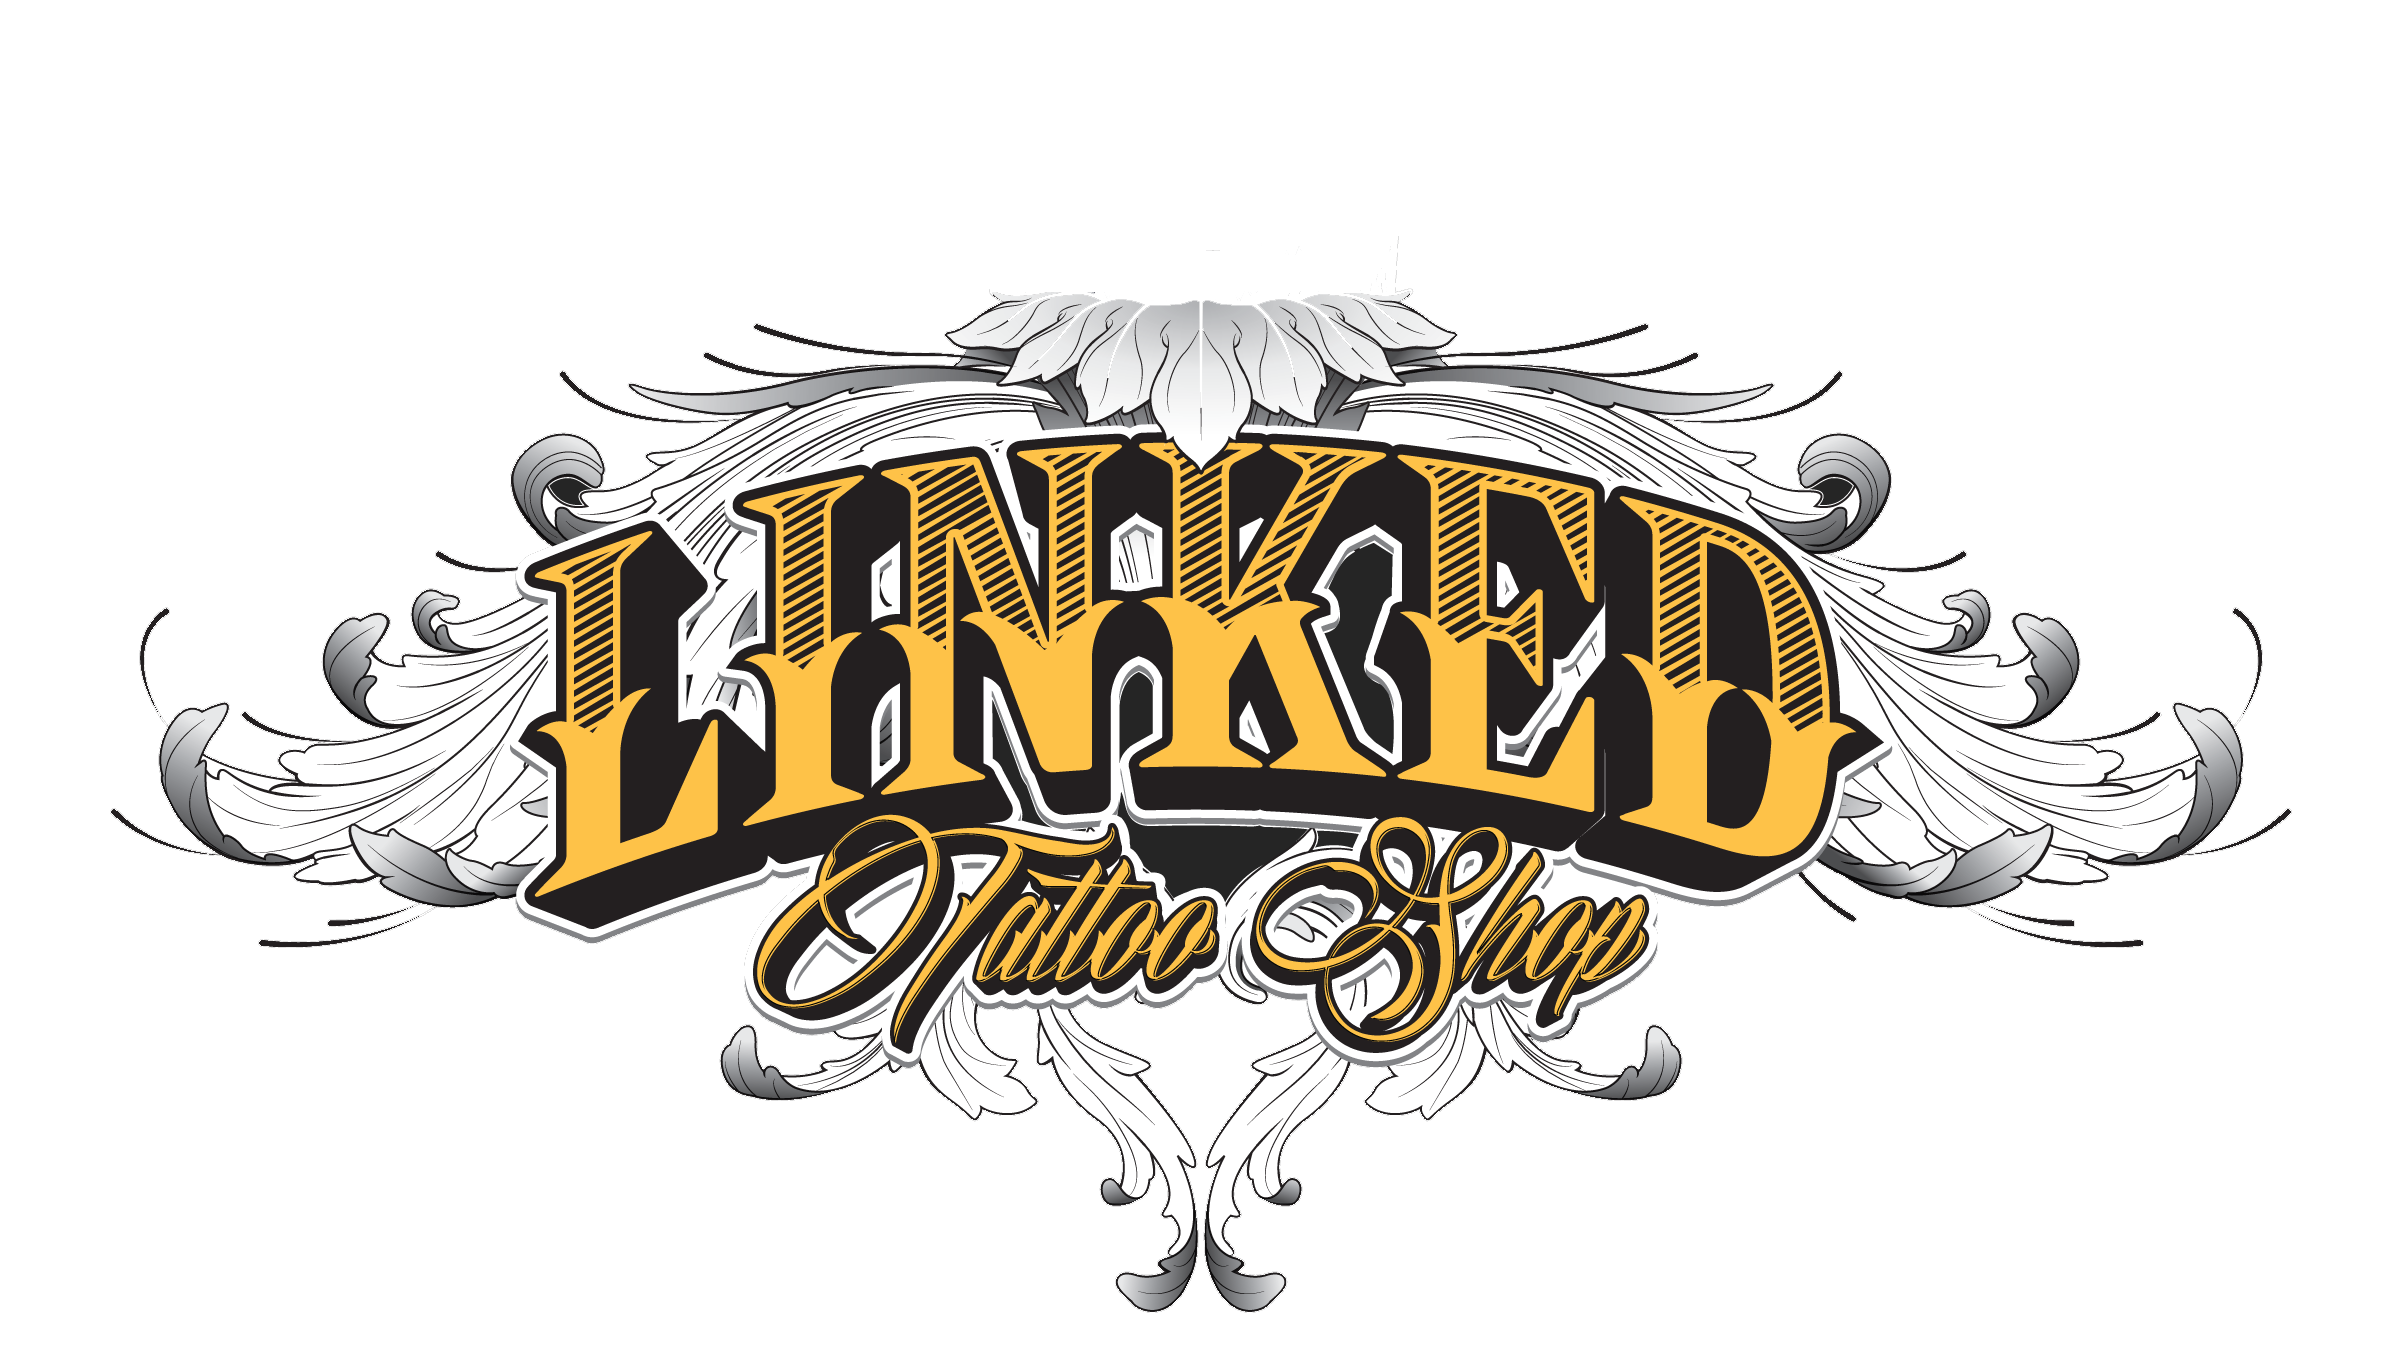 Linked Tattoo Shop